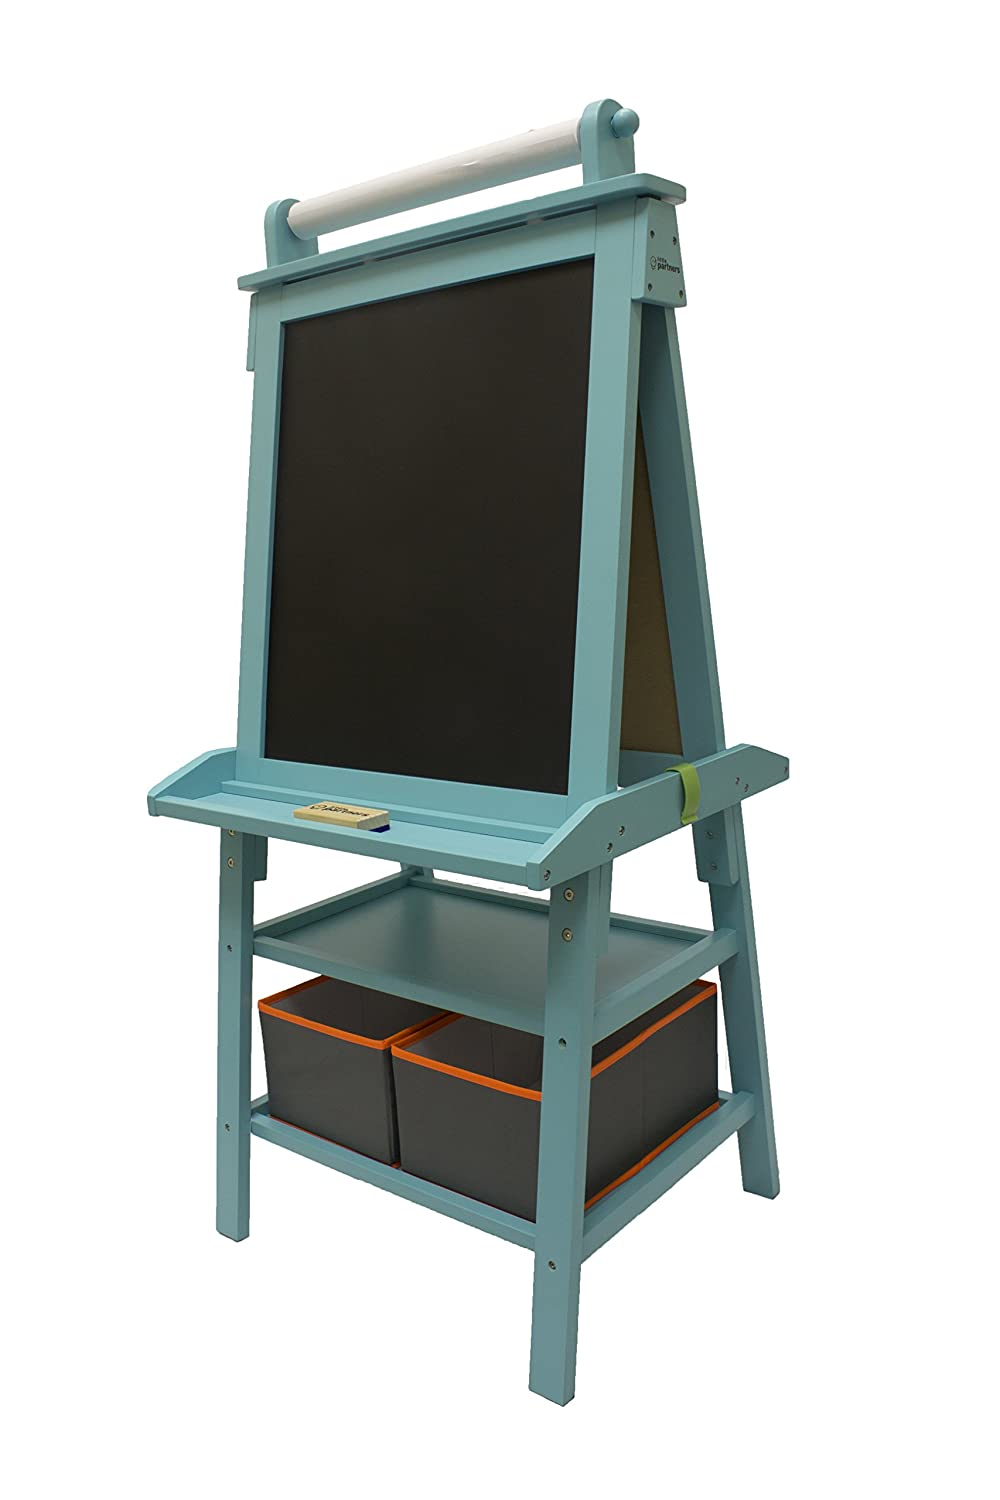 Amazon.com : Little Partners 2-Sided A-Frame Art Easel with Chalk ...